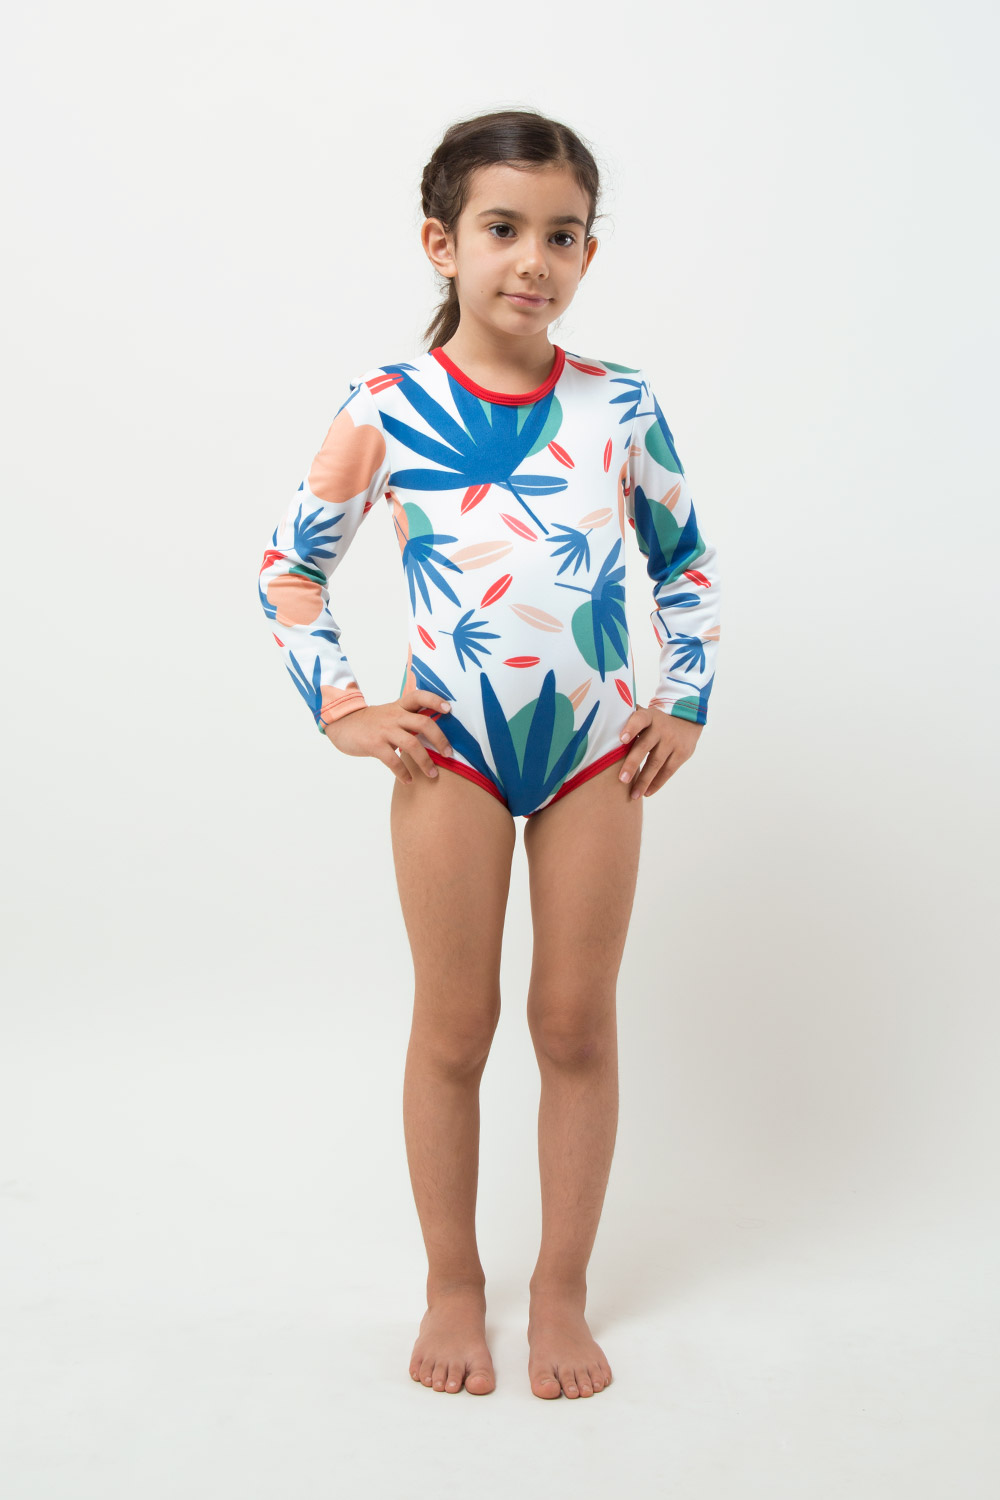 eco friendly swimsuit UPF 50+ girl modeling - front